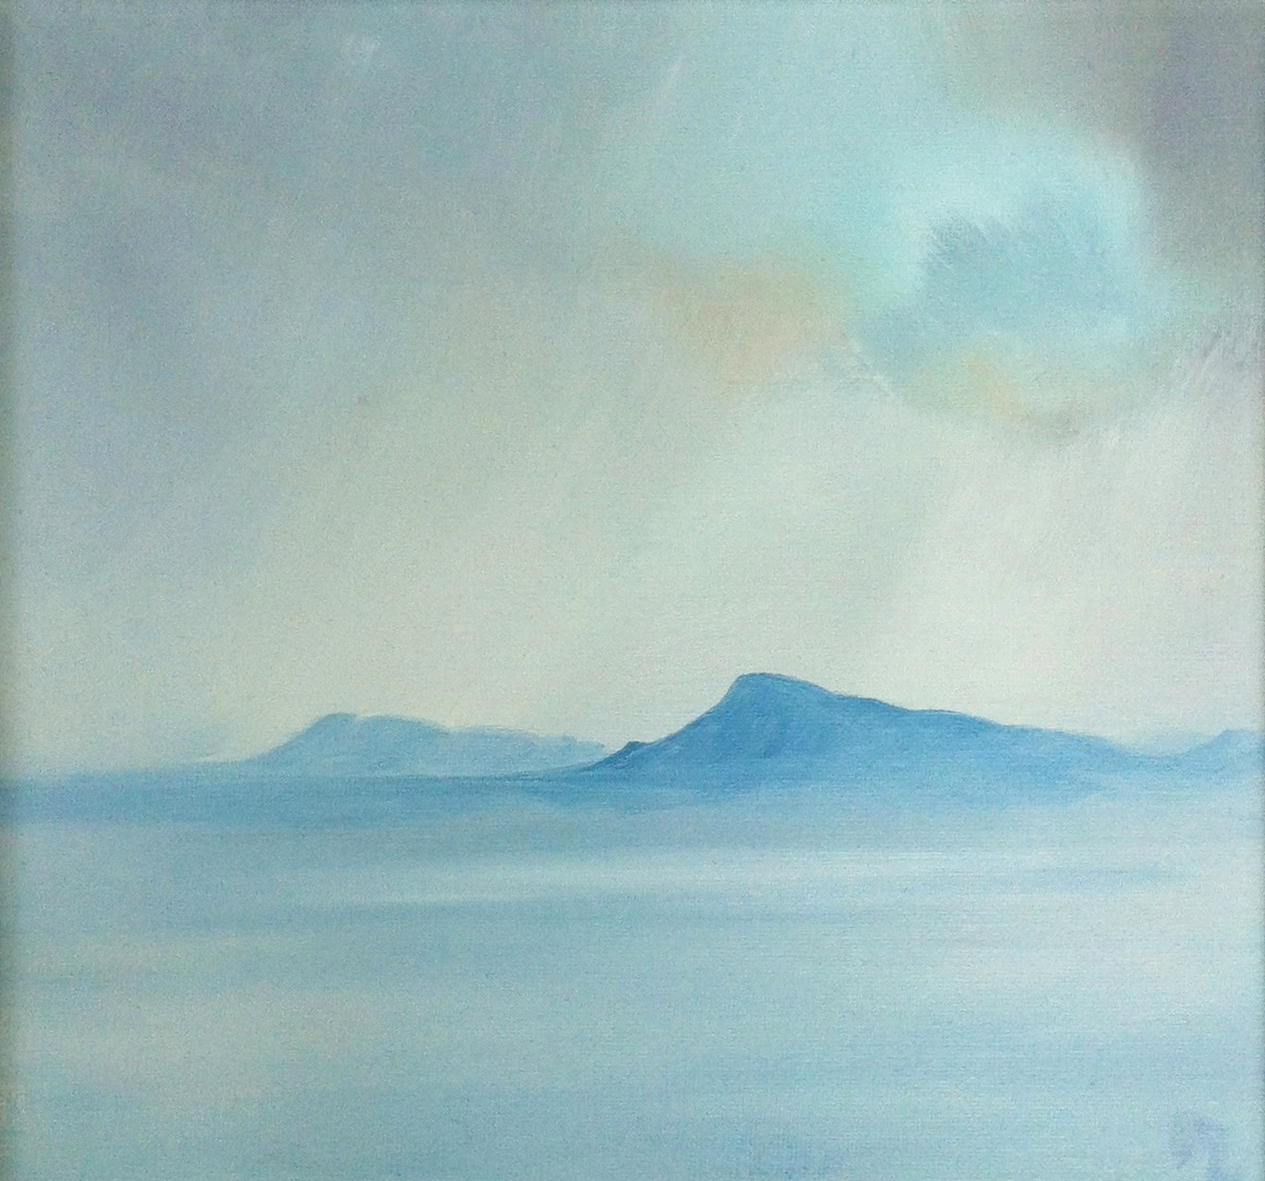 Breaking Mist', Eaval, North Uist